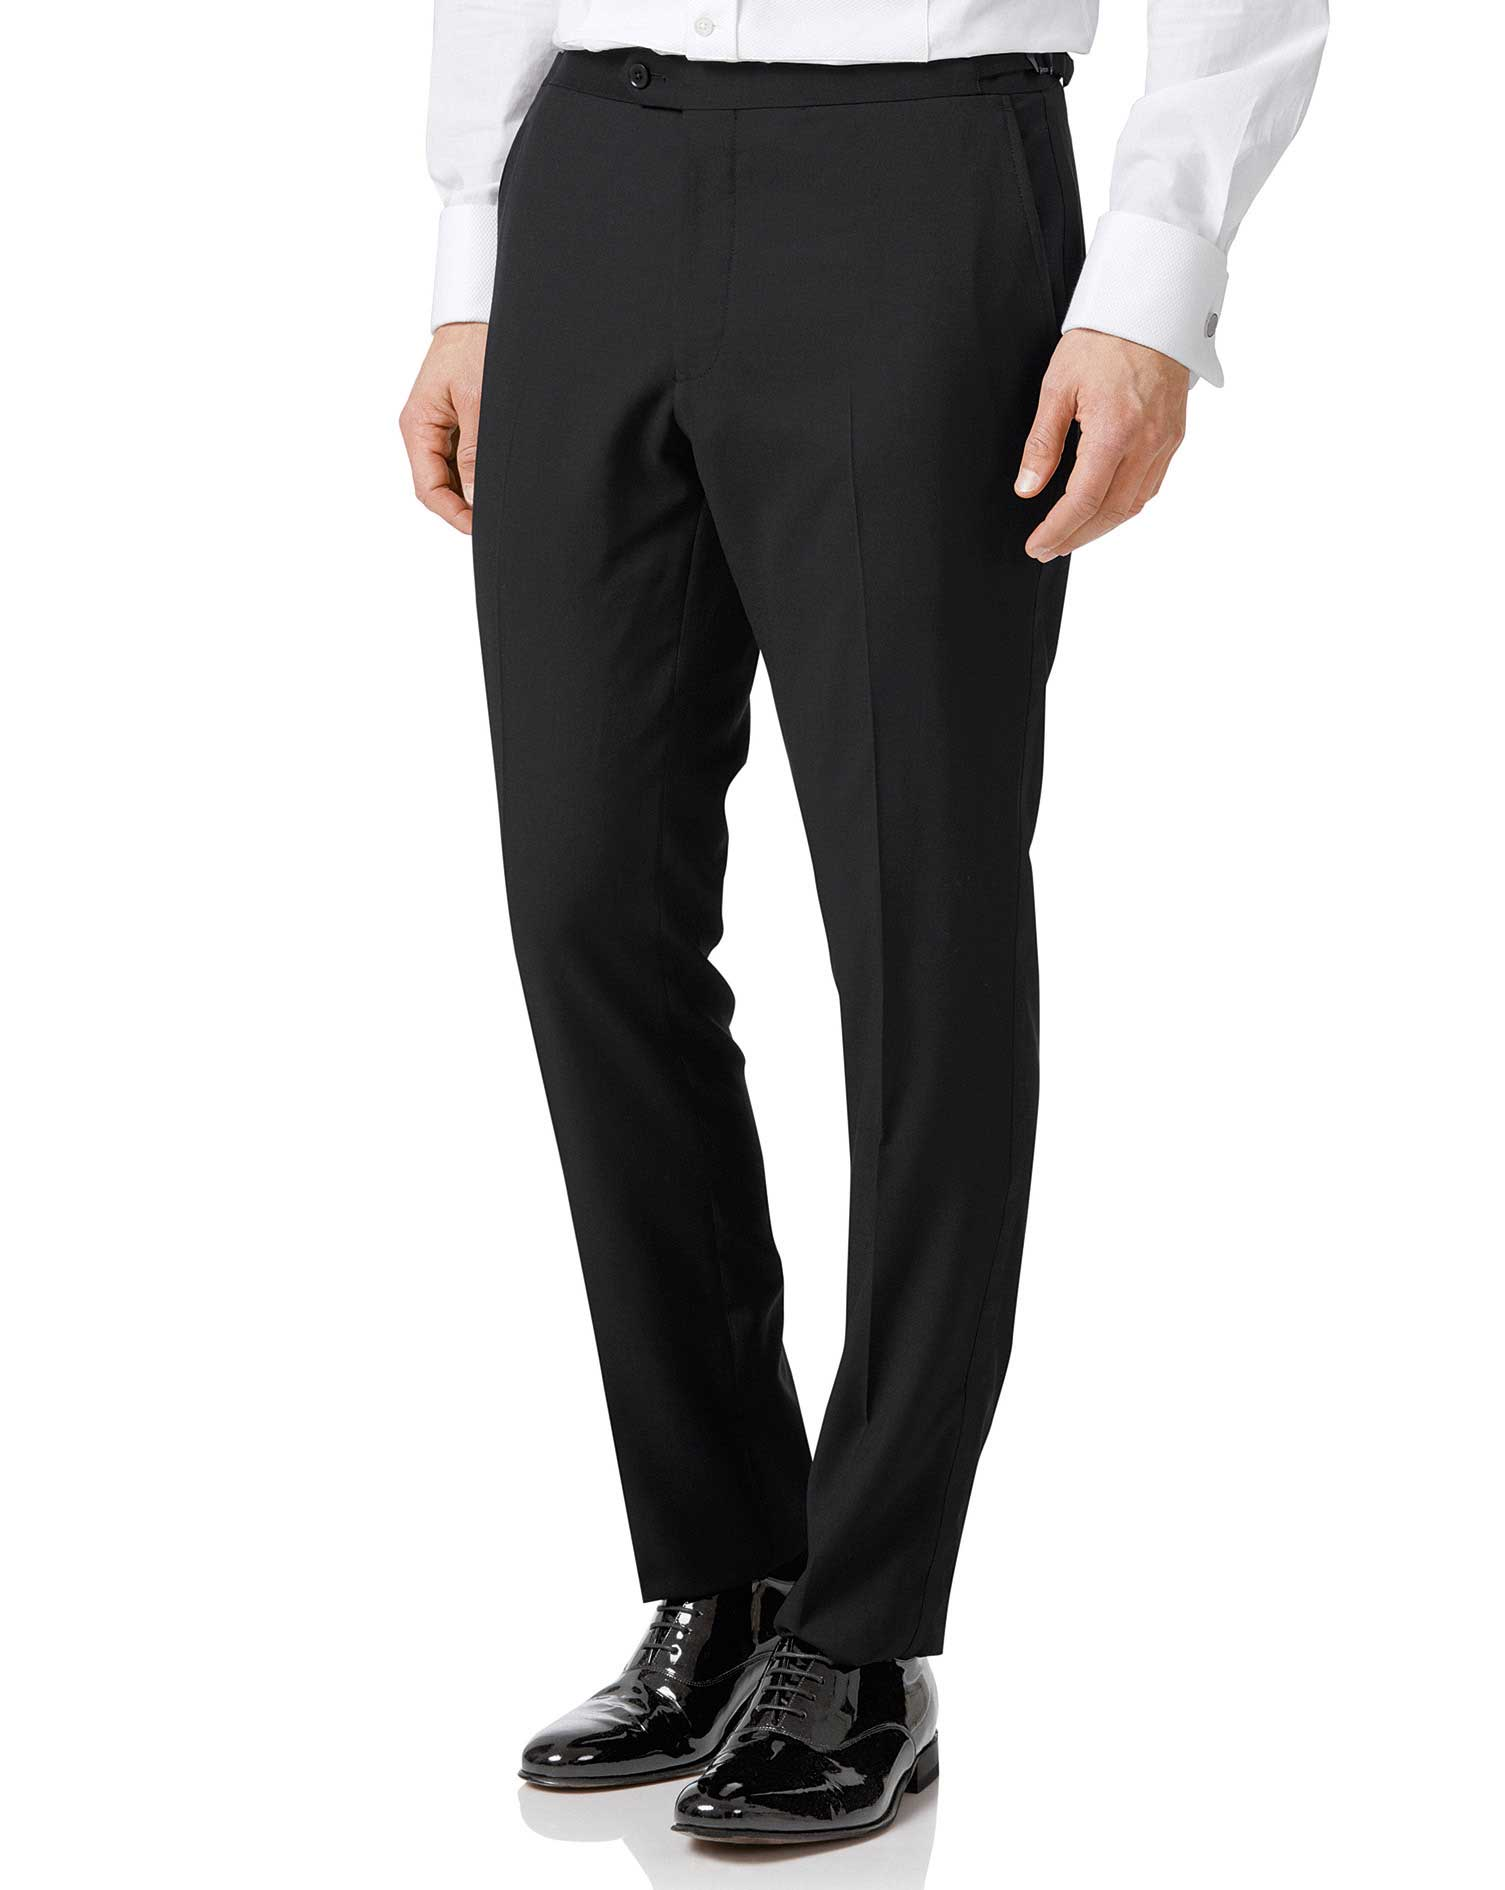 Black Extra Slim Fit Dinner Suit Trouser Size W36 L34 by Charles Tyrwhitt